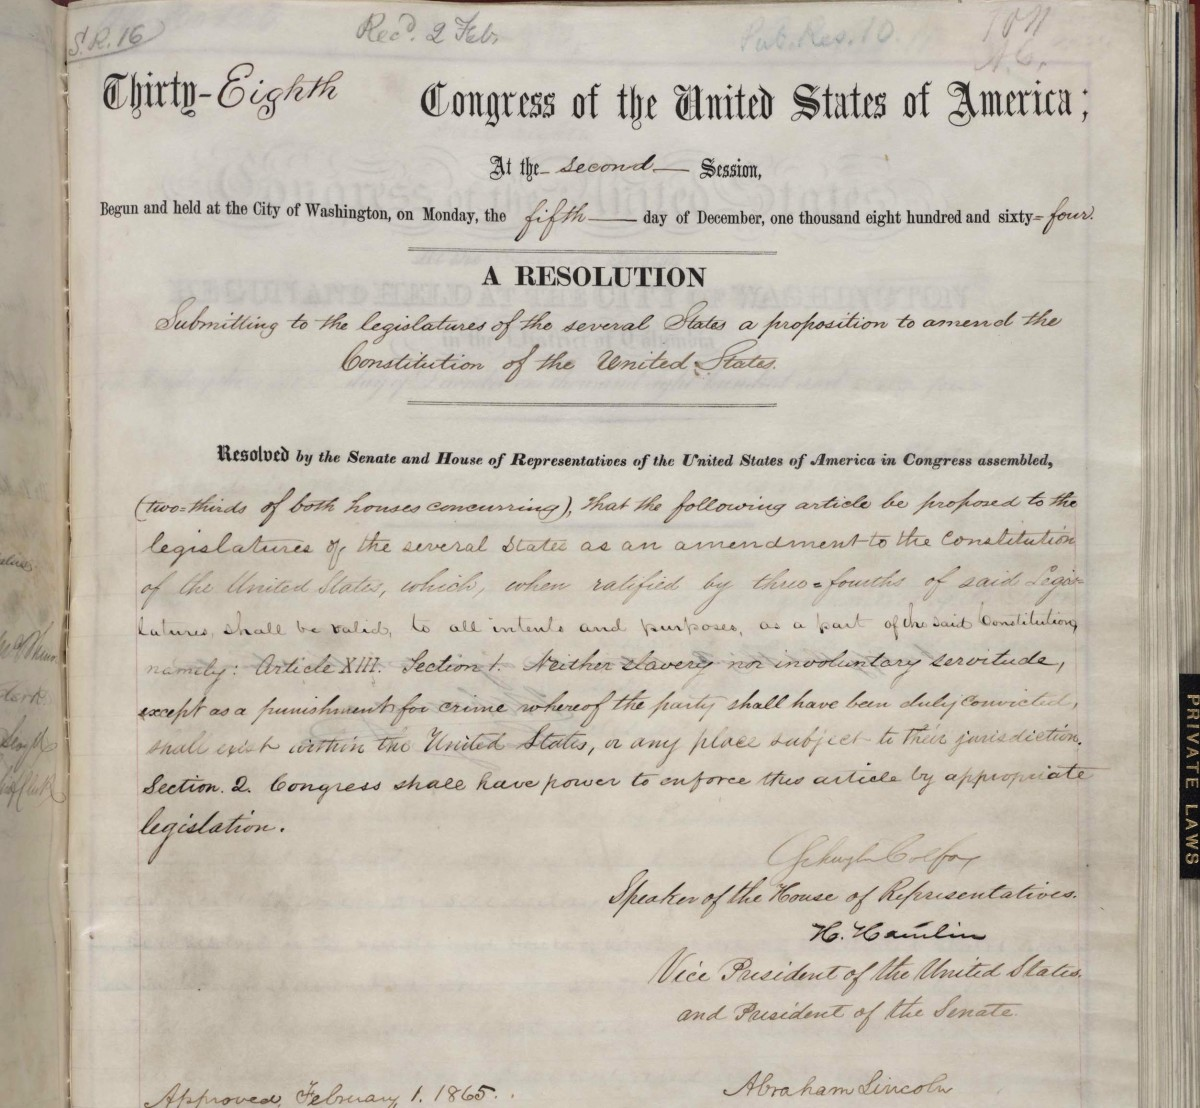 congress passes 13th amendment, 150 years ago - history